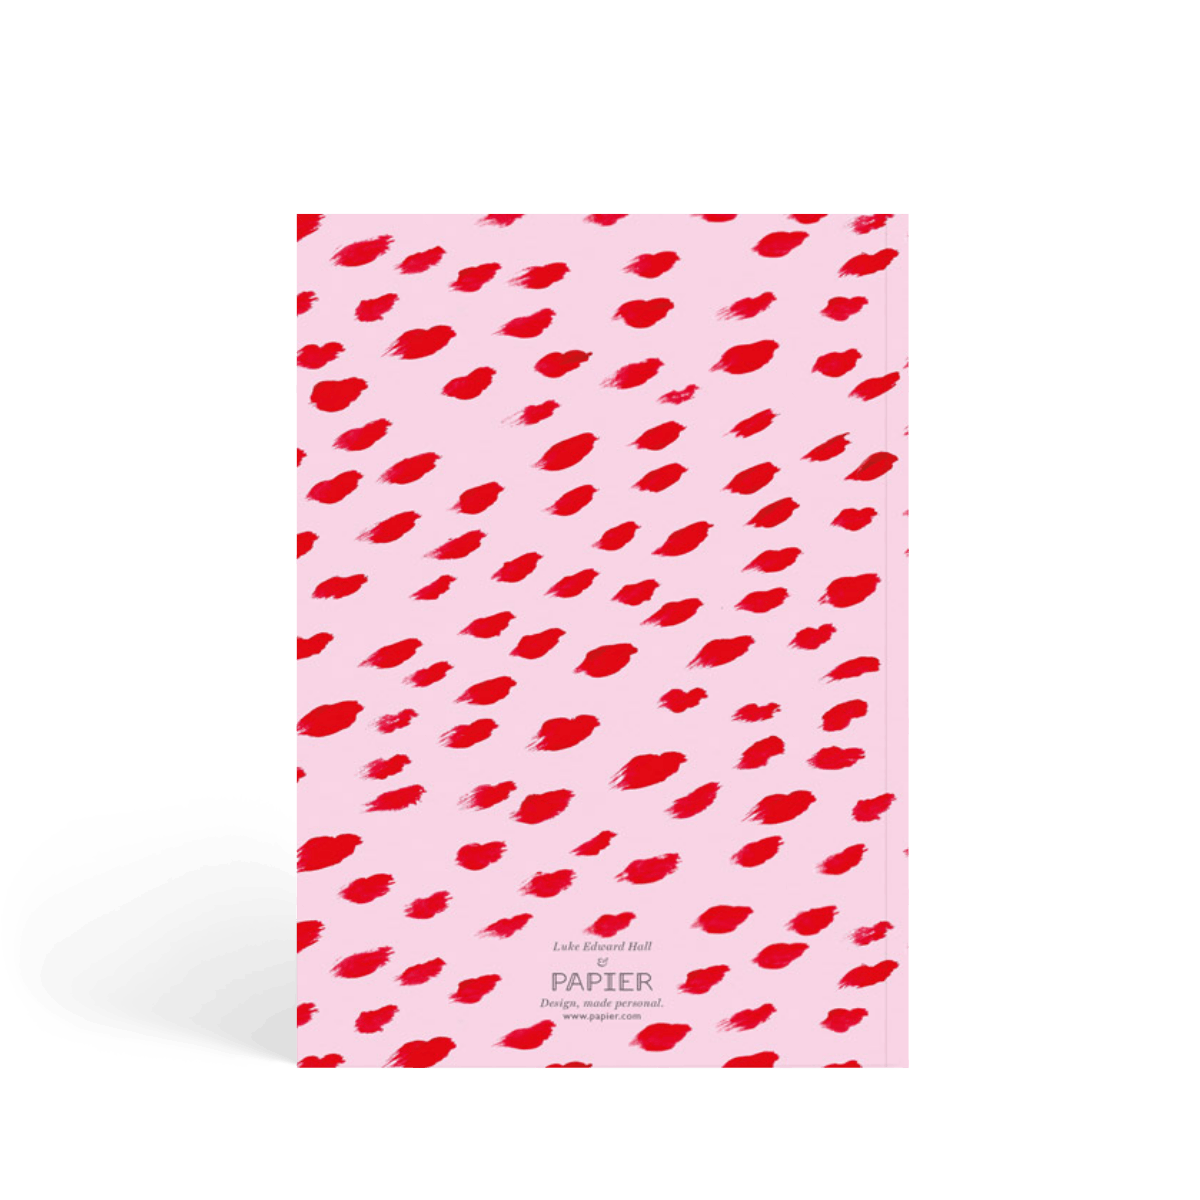 Https%3a%2f%2fwww.papier.com%2fproduct image%2f42162%2f5%2fludo pink 10758 ruckseite 1532446188.png?ixlib=rb 1.1